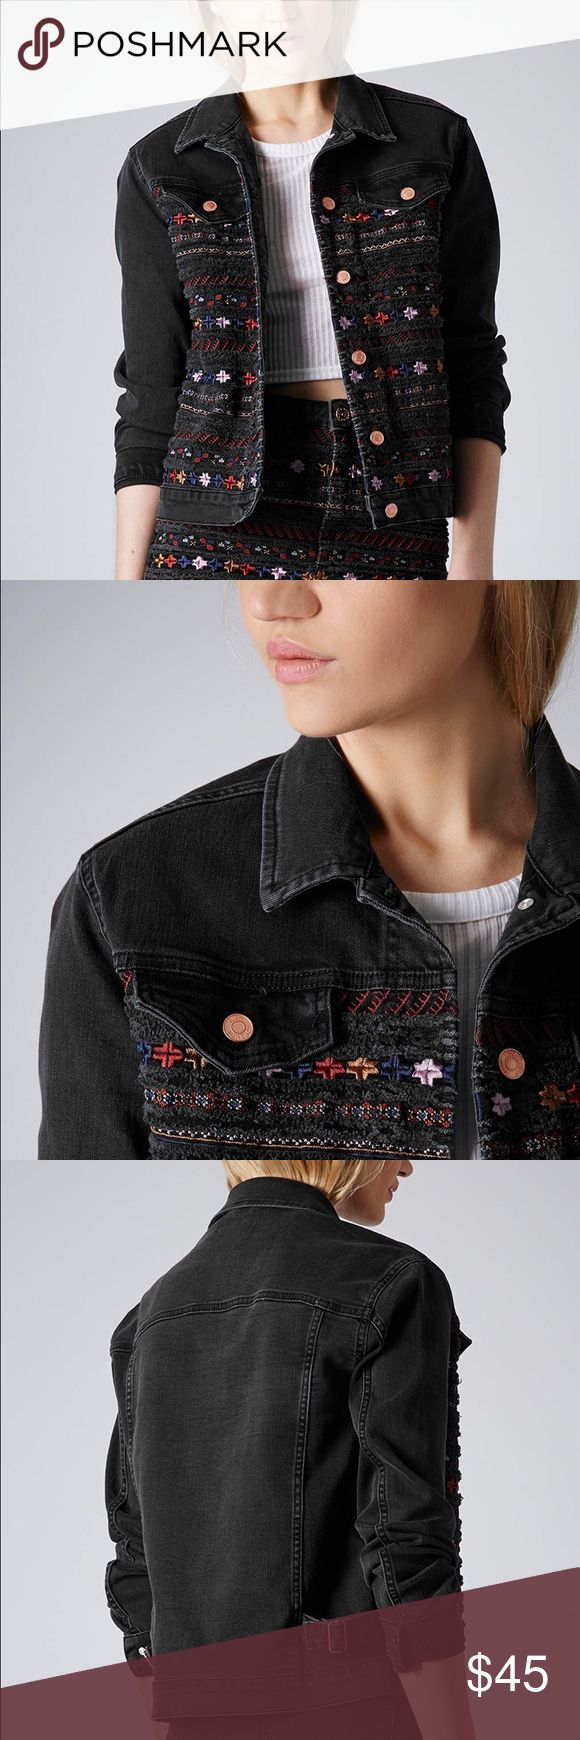 Women's Black Moto Embroidered Denim Jacket Pairs well with any outfit! Great condition - barely worn (still has that delicious stiff denim feel) Topshop Jackets & Coats Jean Jackets